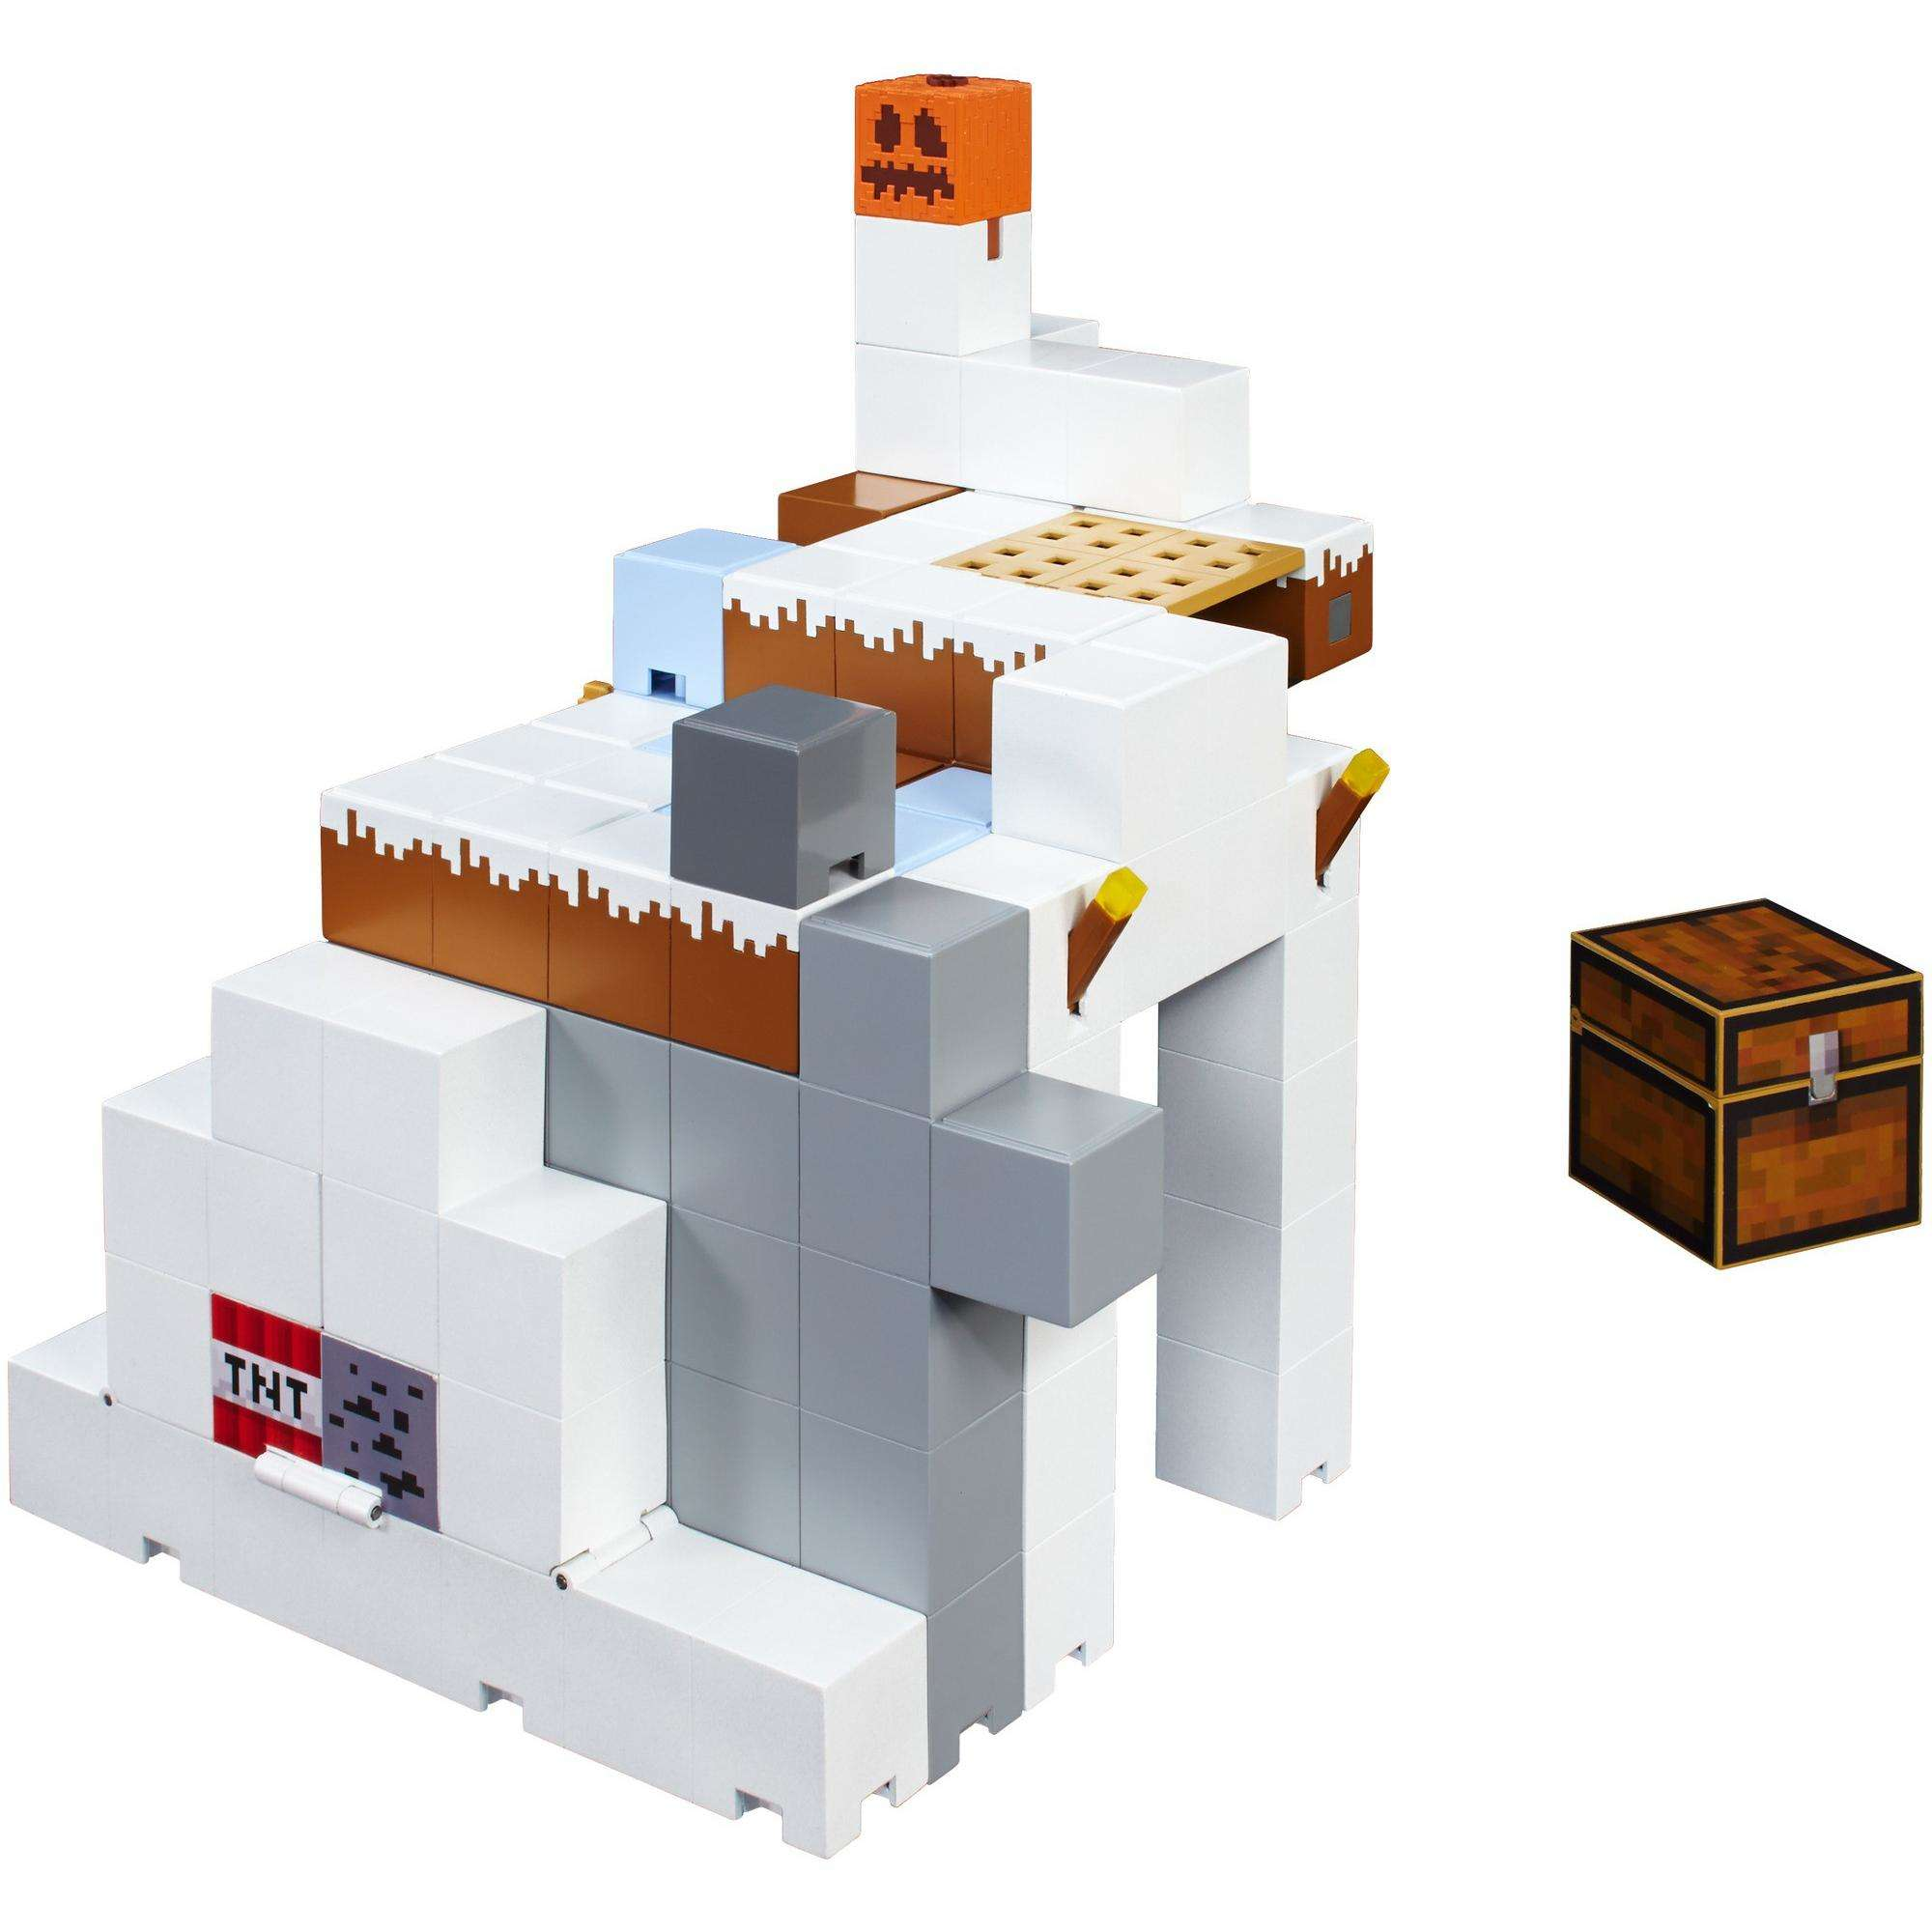 Minecraft Tundra Tower Expansion Playset by MATTEL BRANDS A DIVISION OF MATTEL DIRECT IMPORT INC